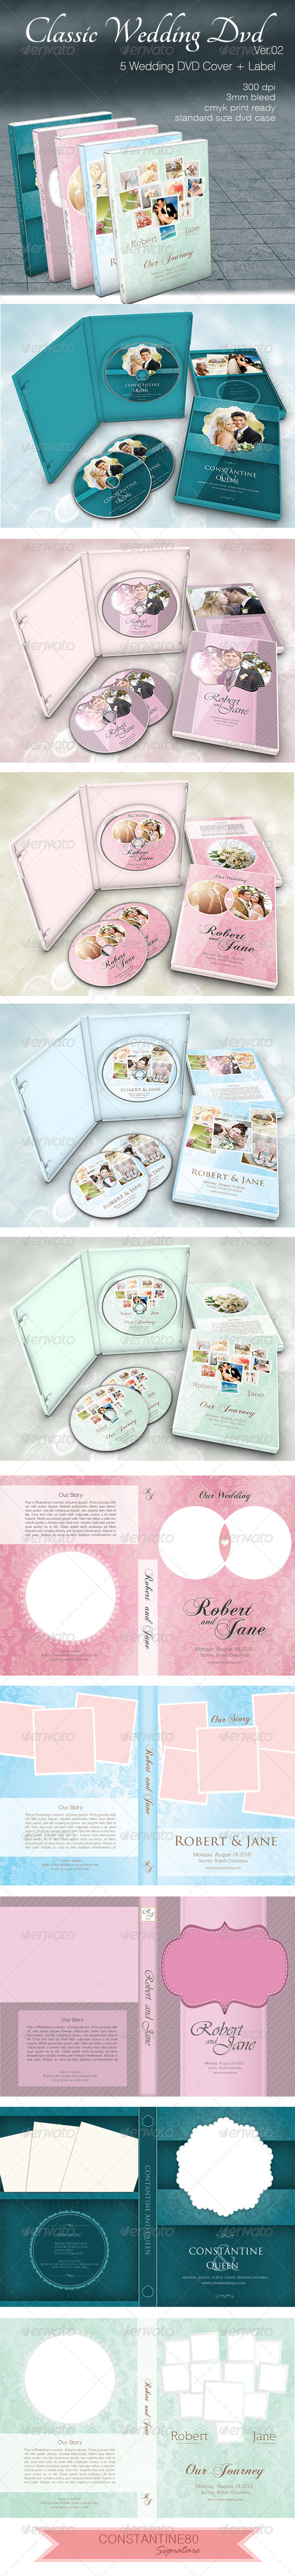 Classic Wedding Dvd ver02 - CD & DVD artwork Print Templates